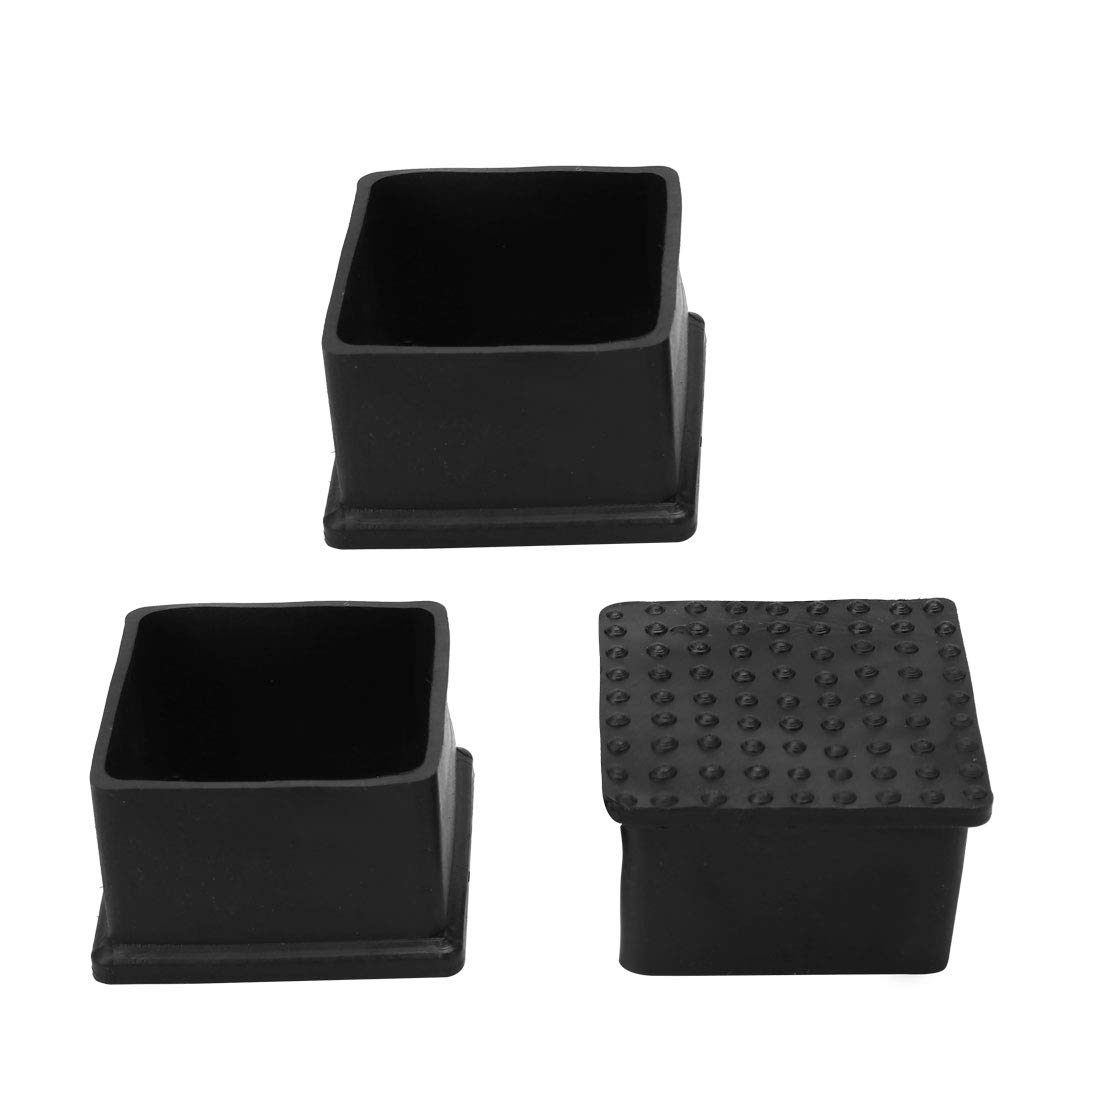 50x50mm uxcell PVC Table Leg Cap End Tip Feet Cover Furniture Glide Floor Protector 4pcs 2 x 2 Reduce Noise Prevent Scratch Inner Size